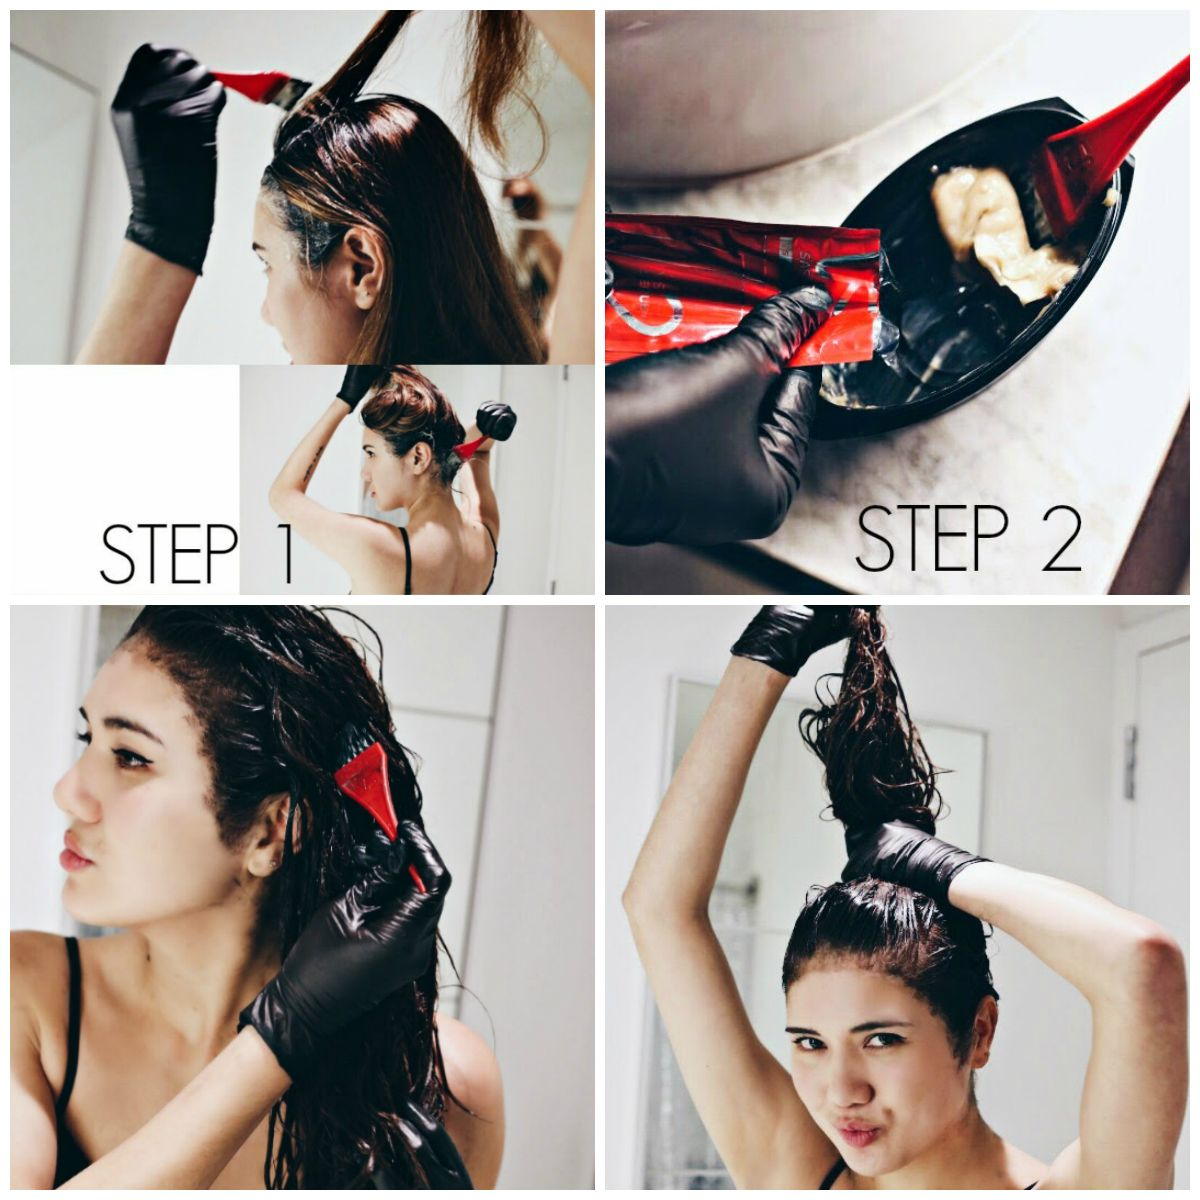 Hair Dye Tutorial: How to dye your hair at home with Vidal Sassoon ...